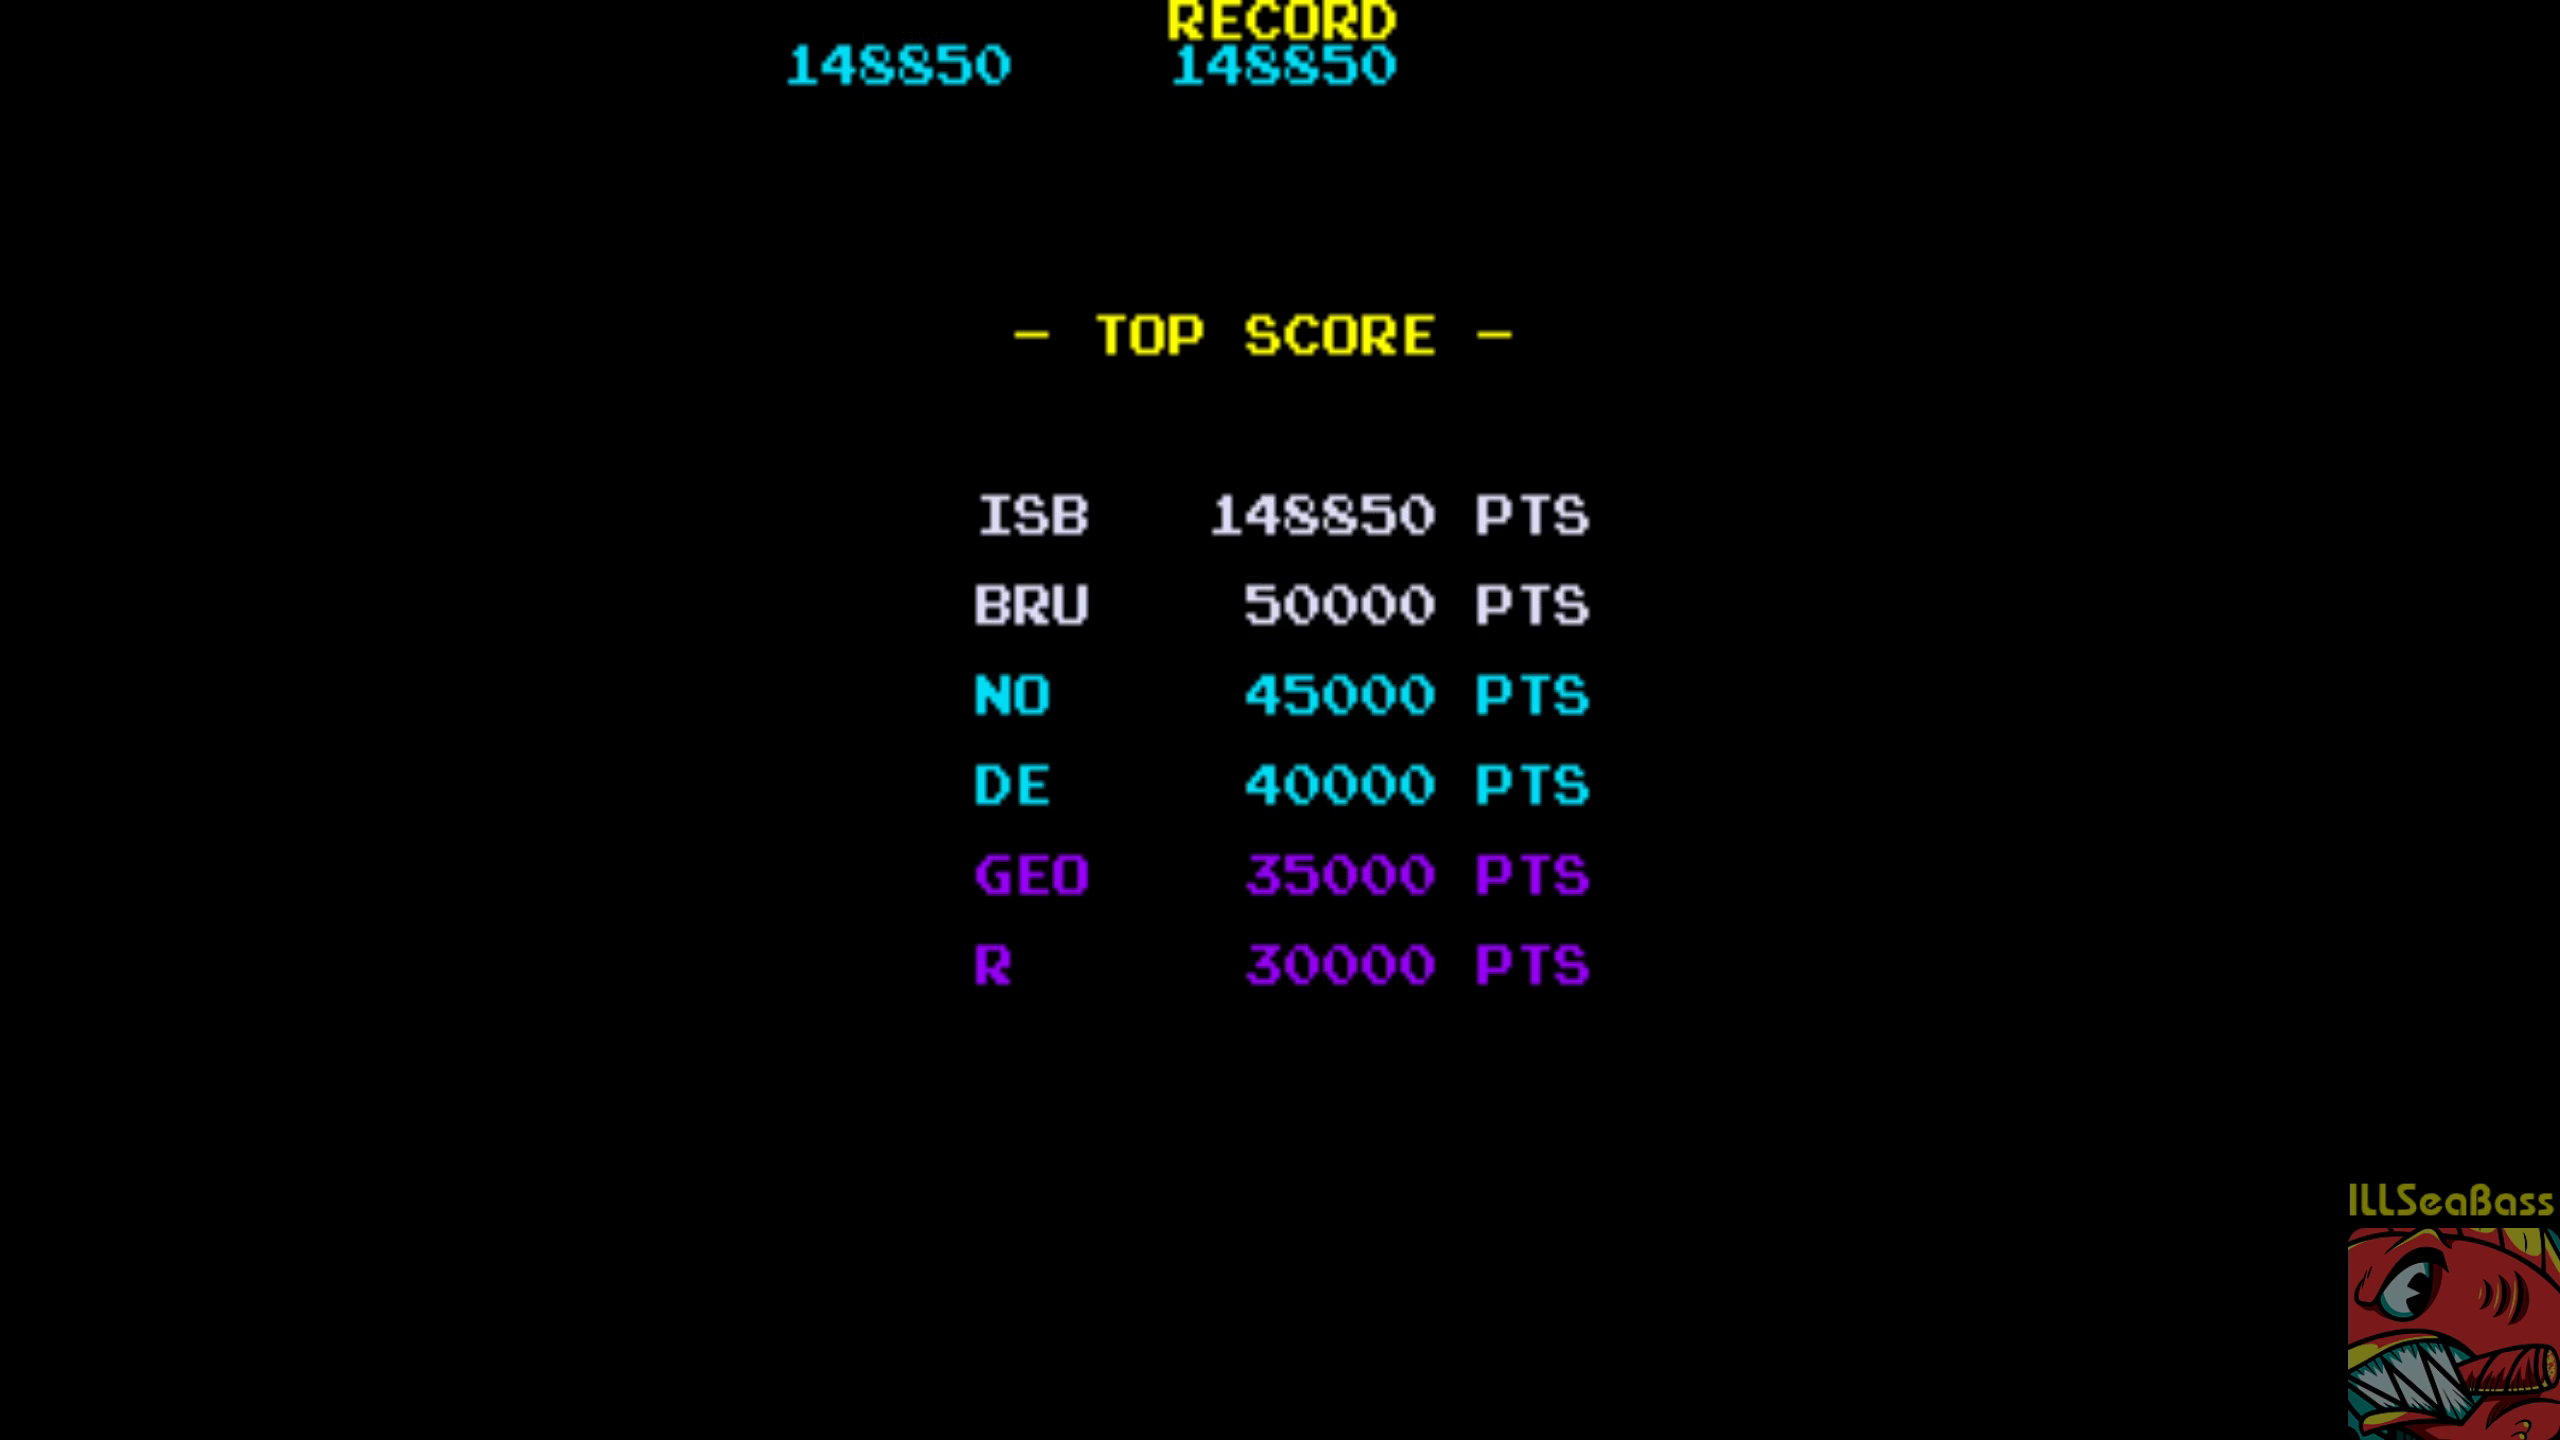 ILLSeaBass: Hot Shocker [hotshockb] (Arcade Emulated / M.A.M.E.) 148,850 points on 2018-08-12 22:03:21